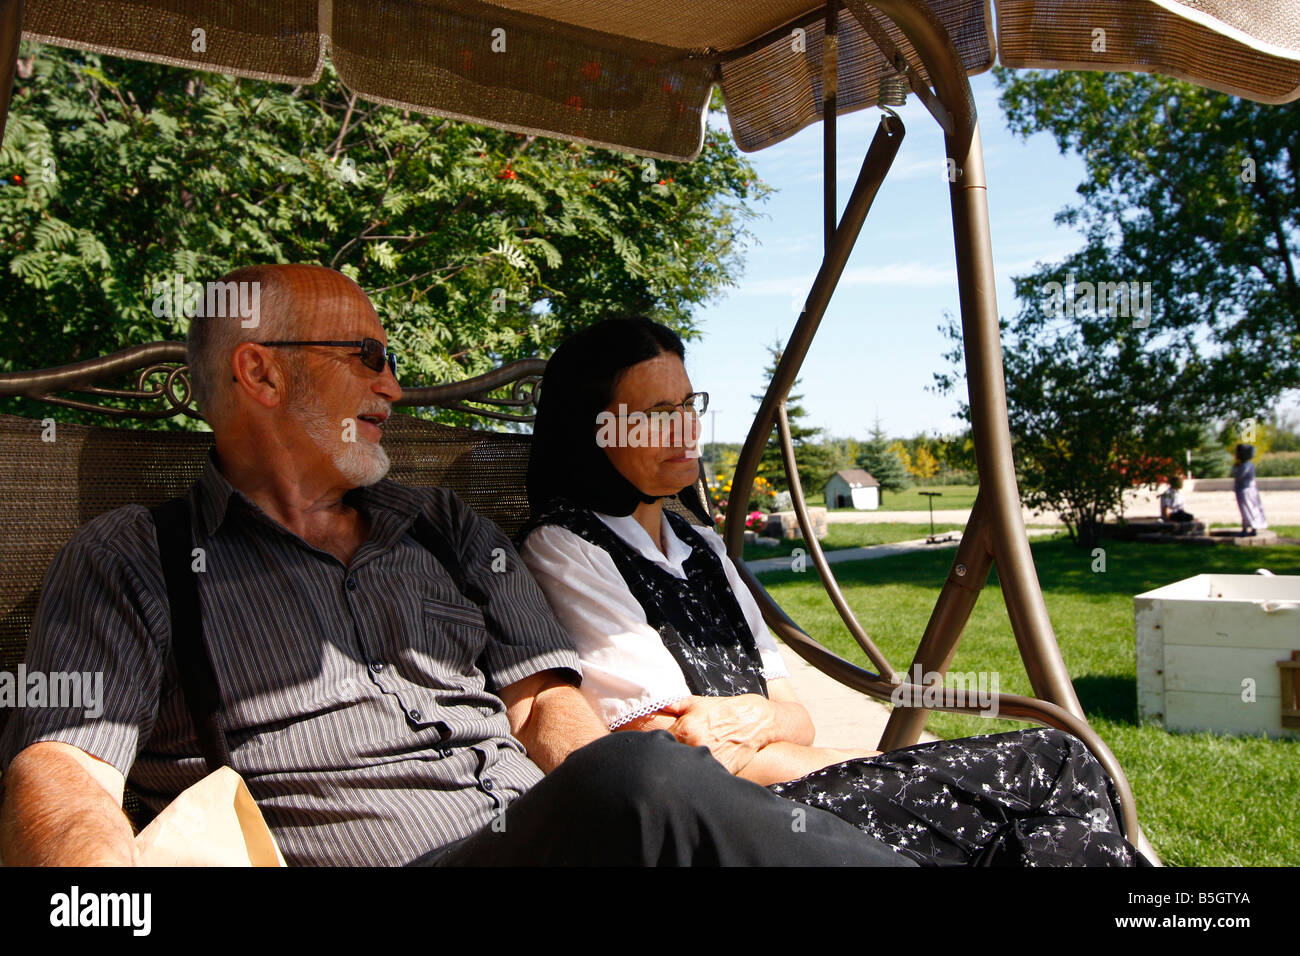 Hutterite Stock Photos & Hutterite Stock Images - Alamy